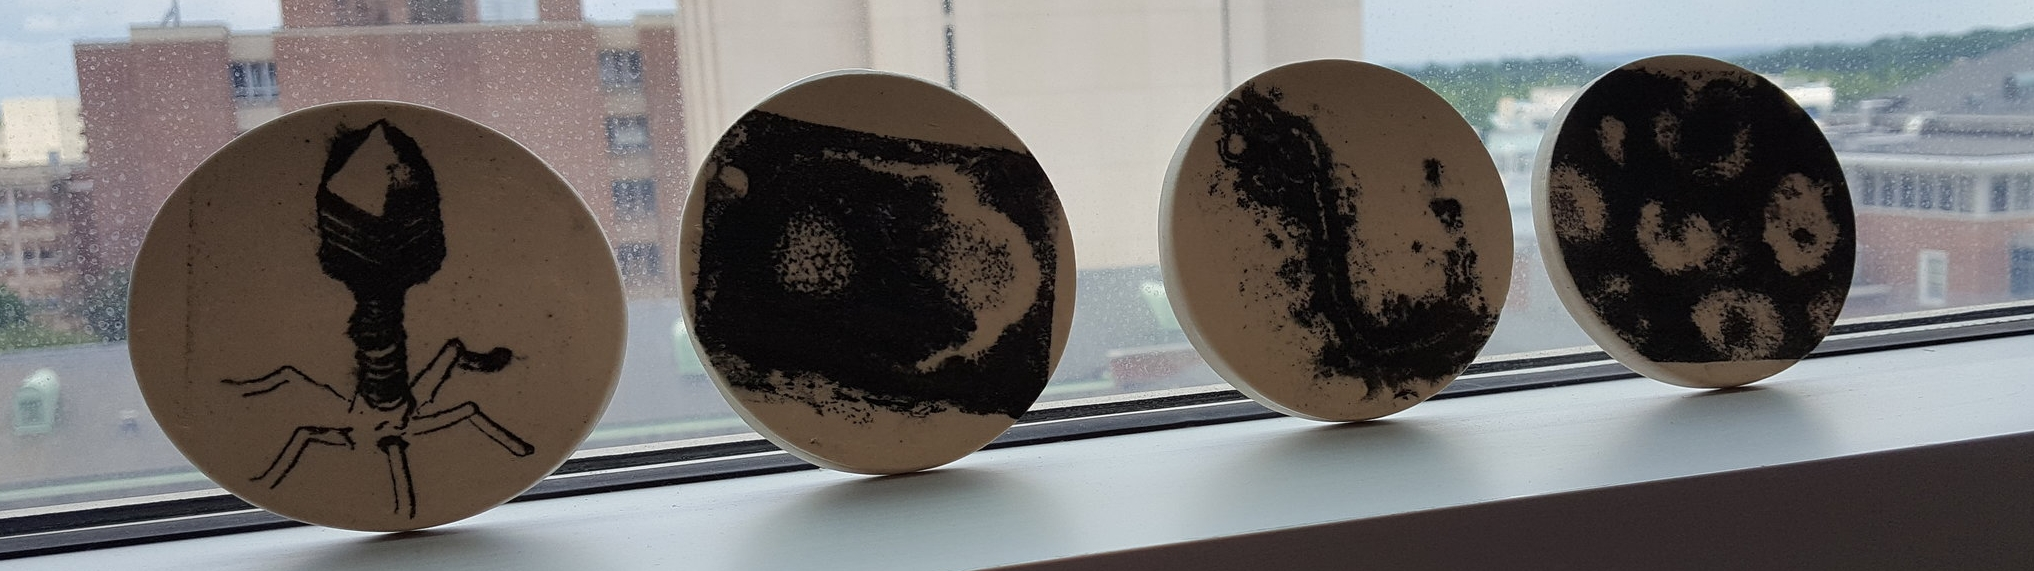 virus pottery by maria gainey (phage t7, hsv, ebola, flu)